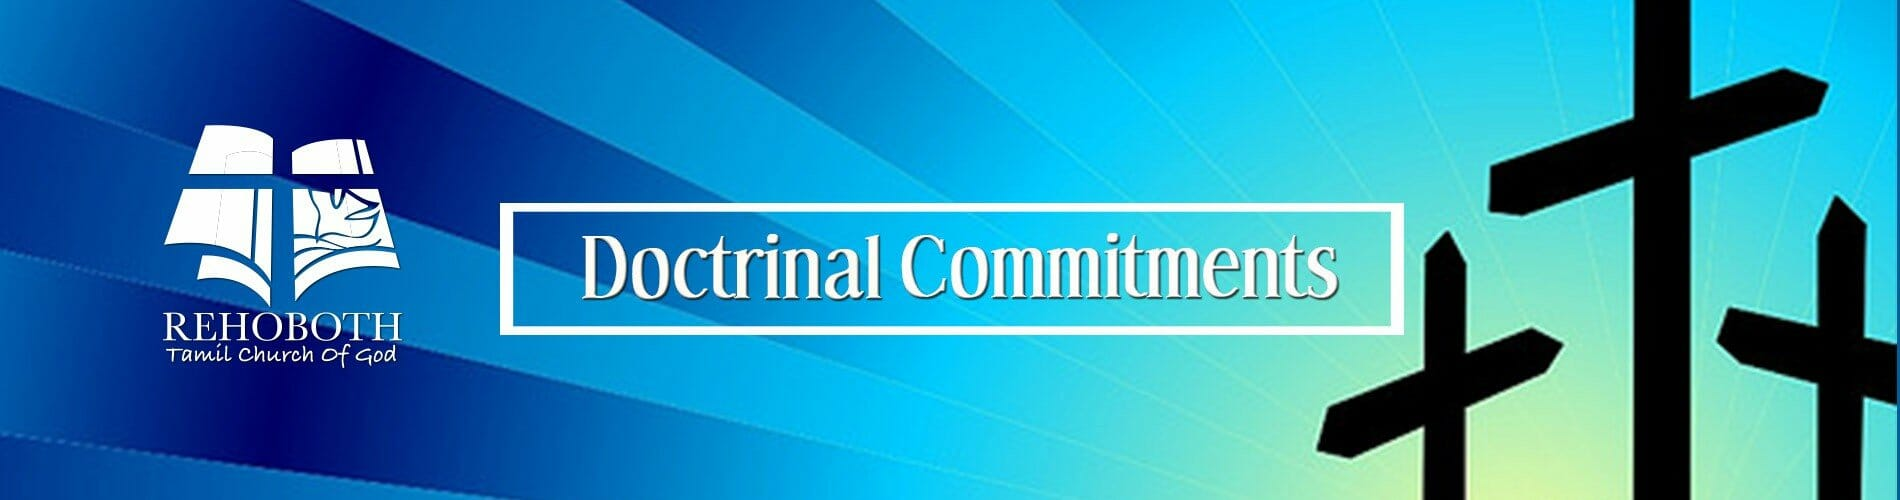 Doctrinal-Commitments